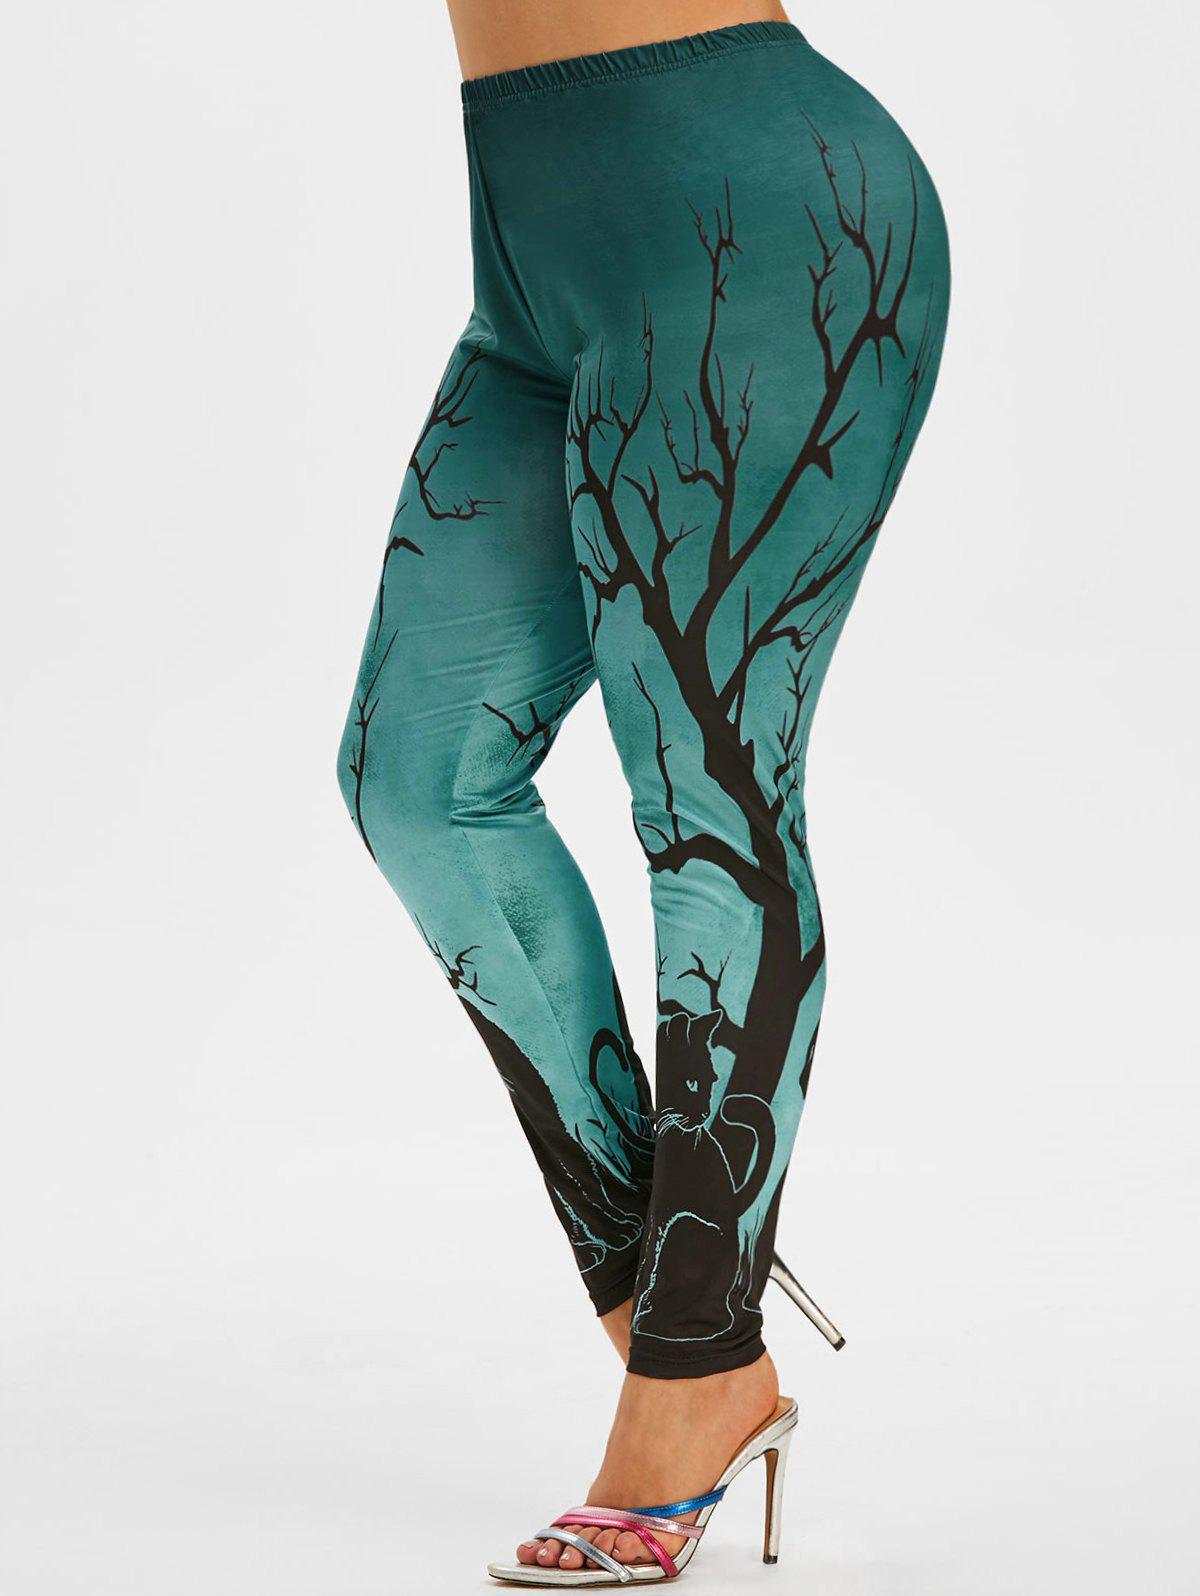 Shop Halloween Black Cat Tree Print Plus Size Leggings